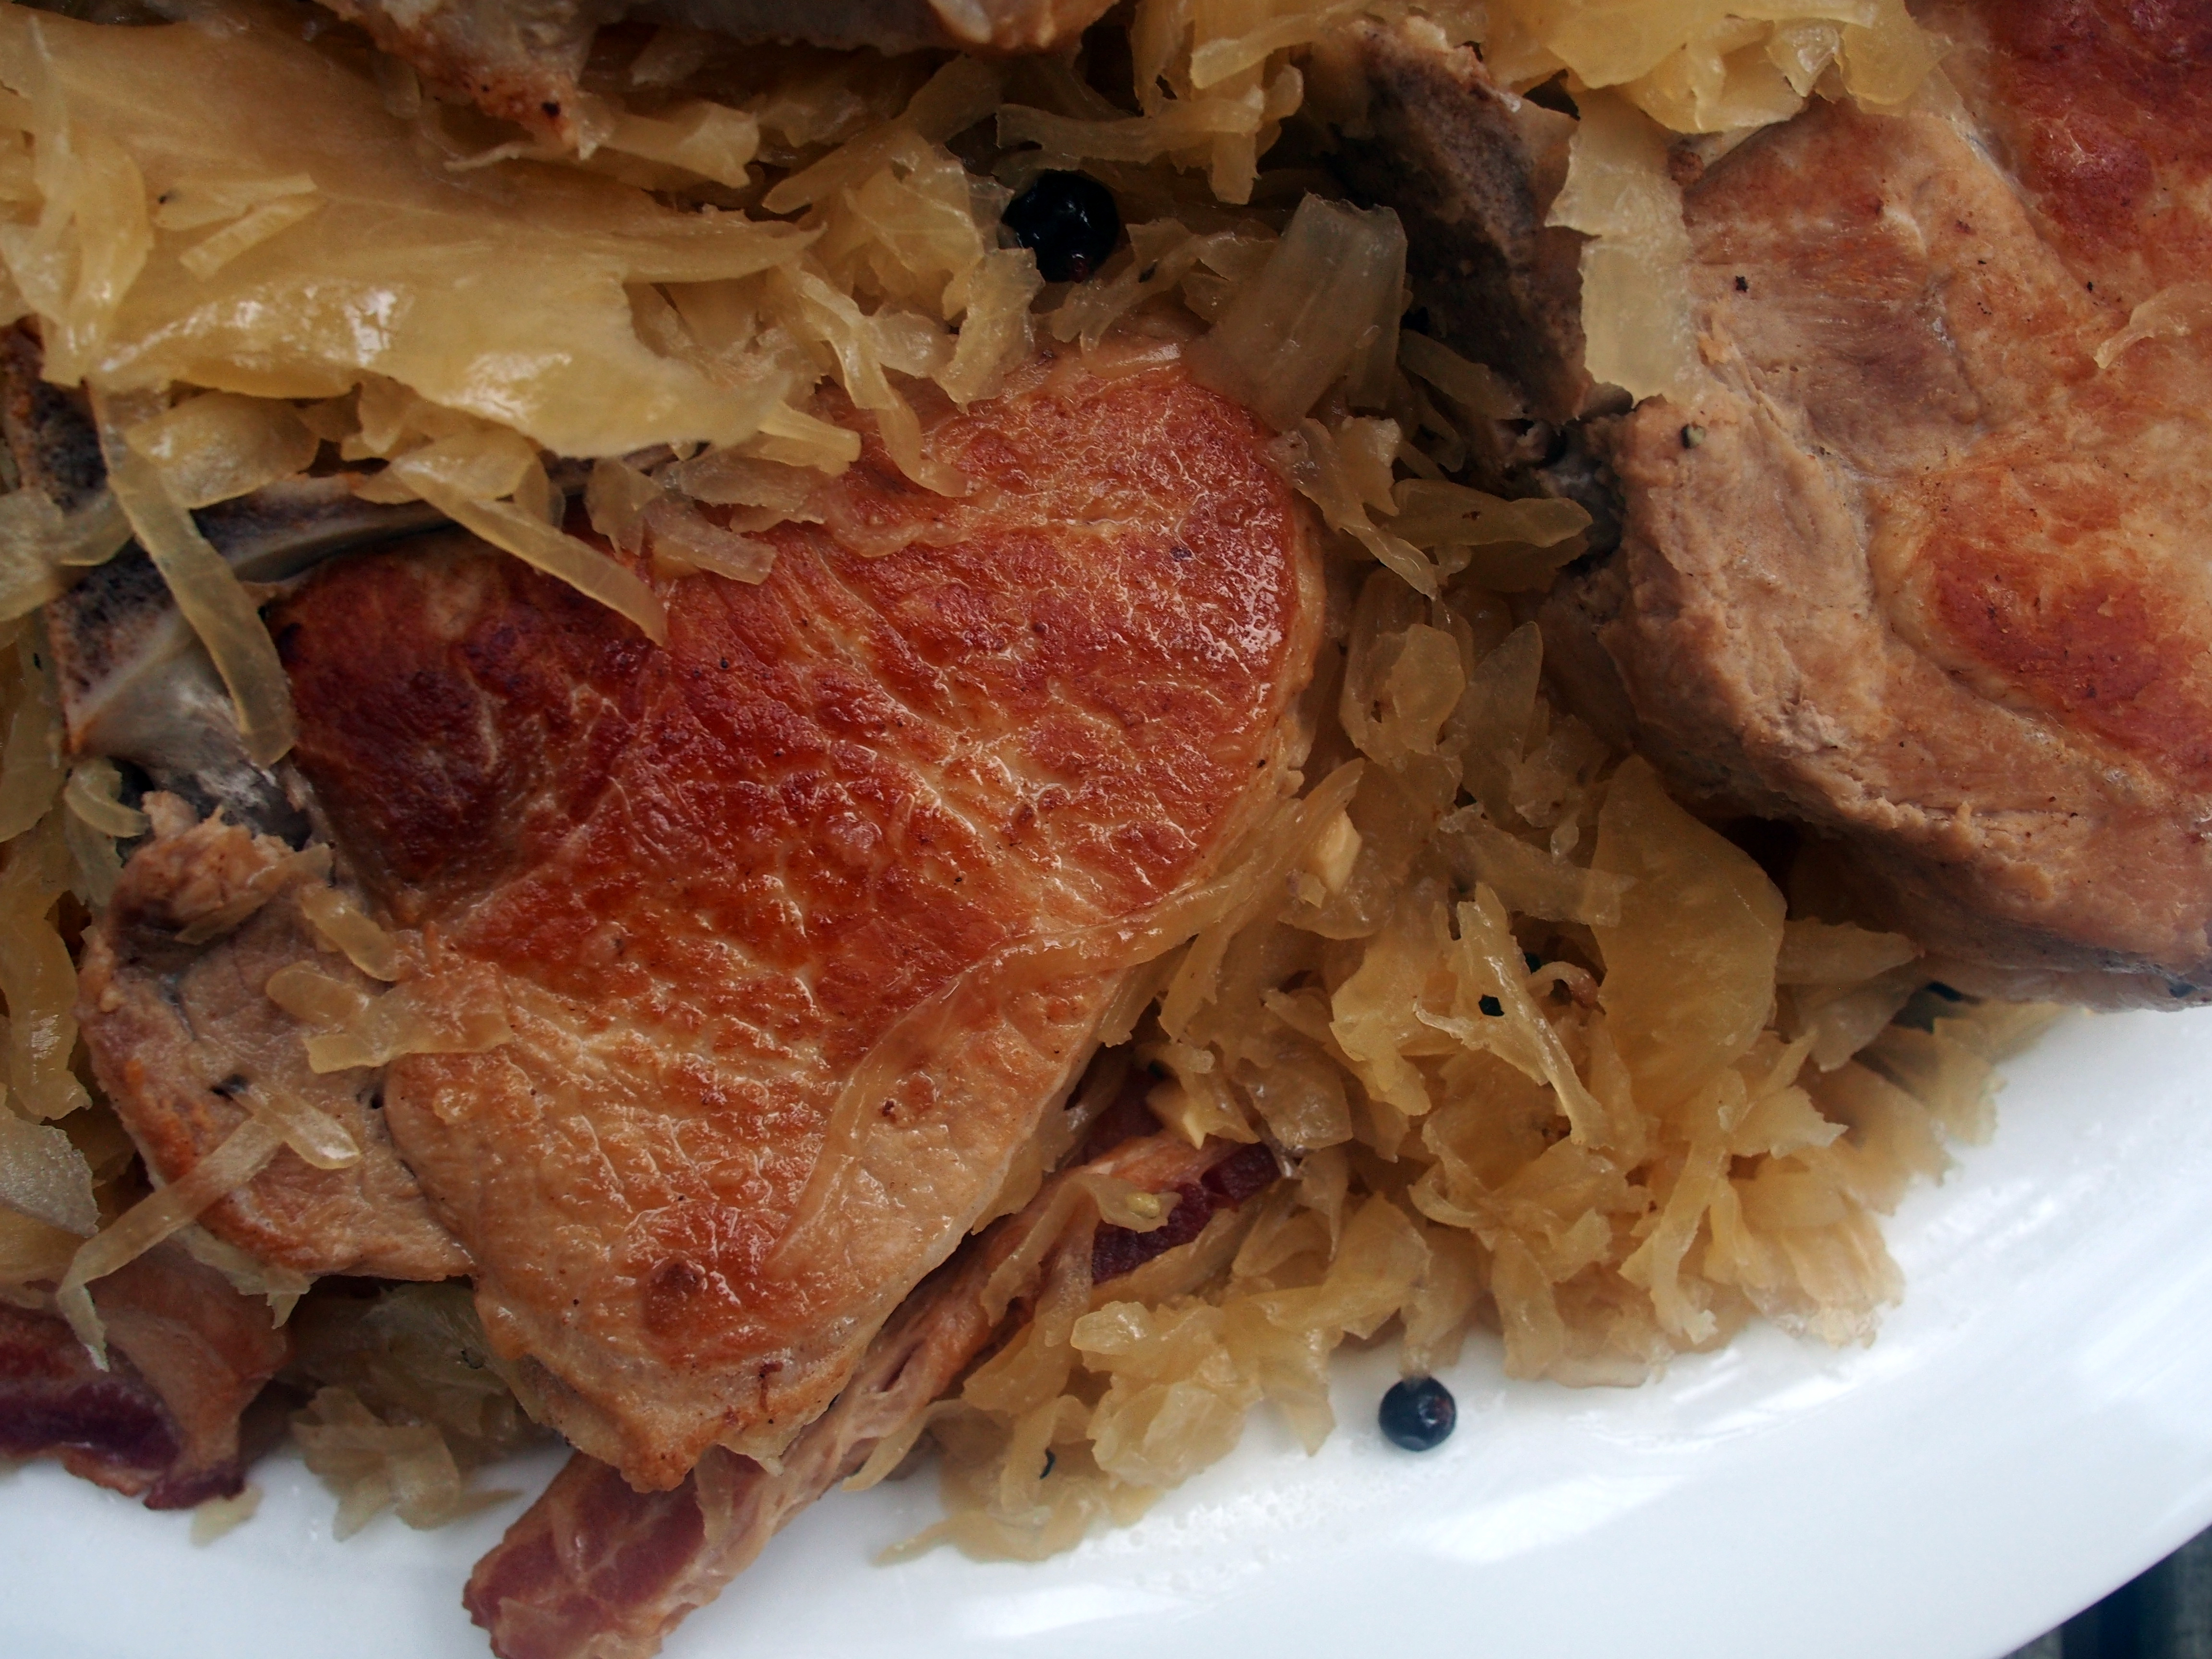 ... pork chop sauerkraut casserole braised pork chops with sauerkraut for